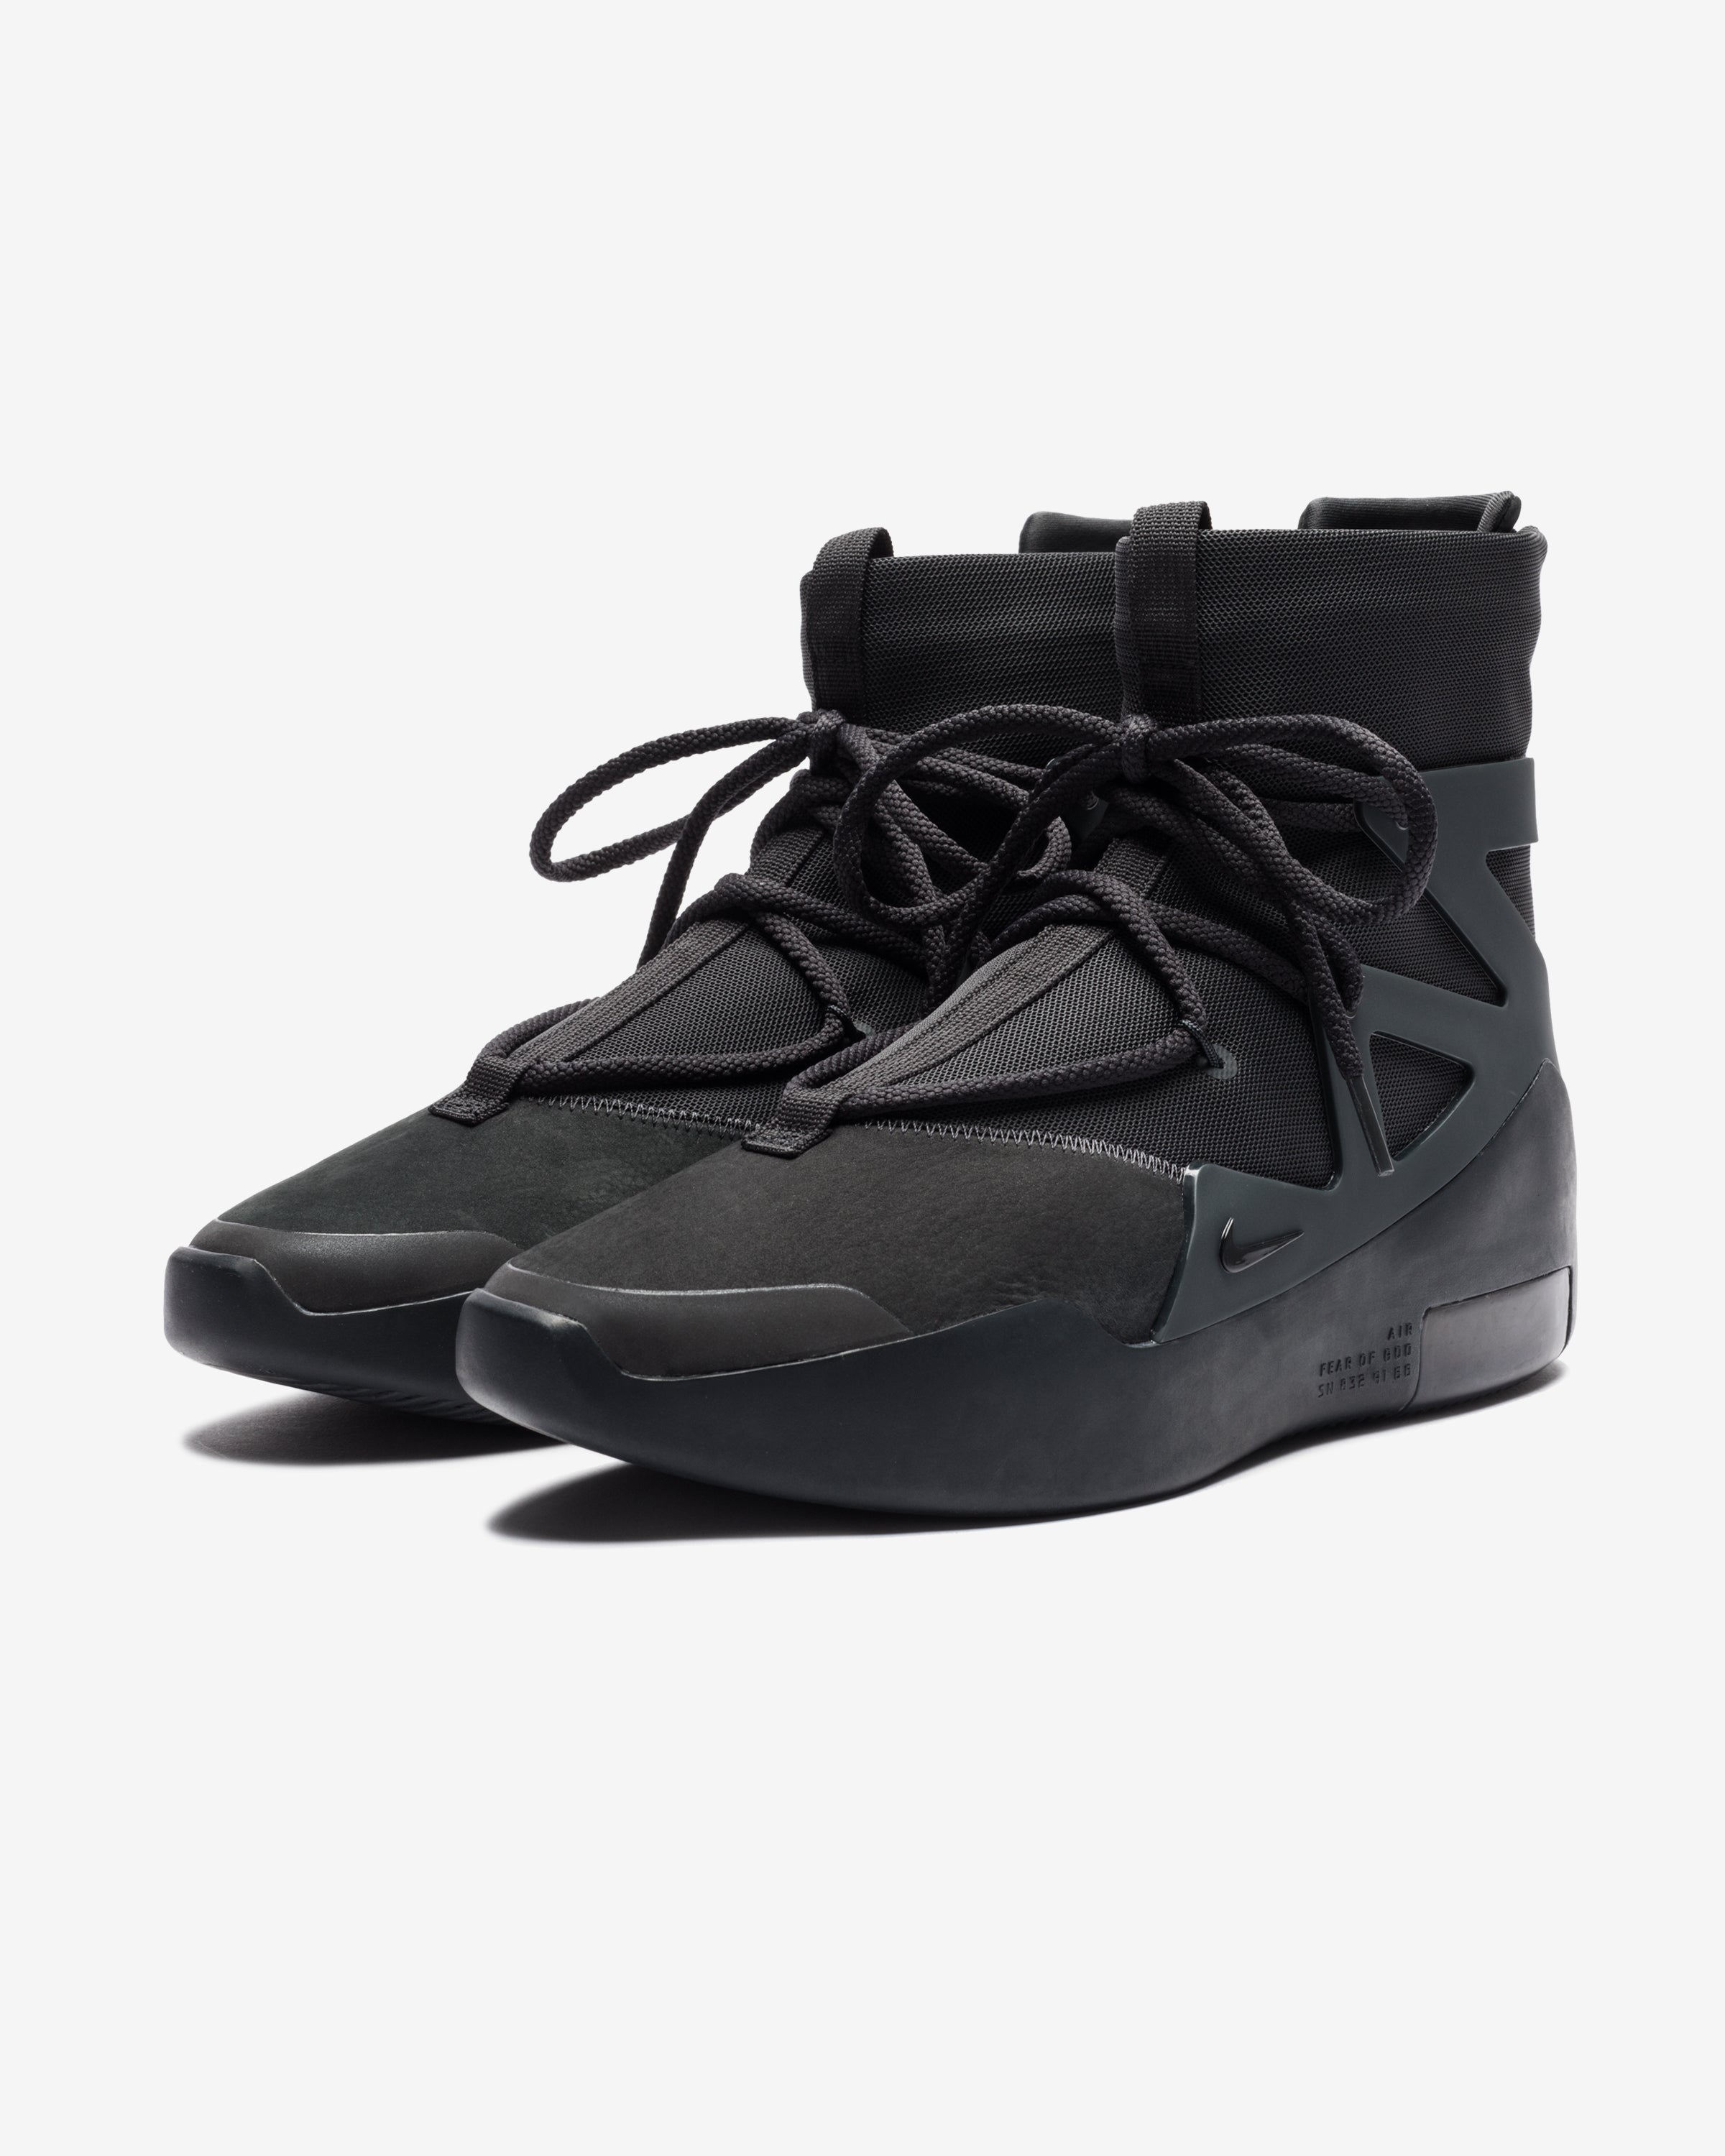 AIR FEAR OF GOD 1 - OFFNOIR